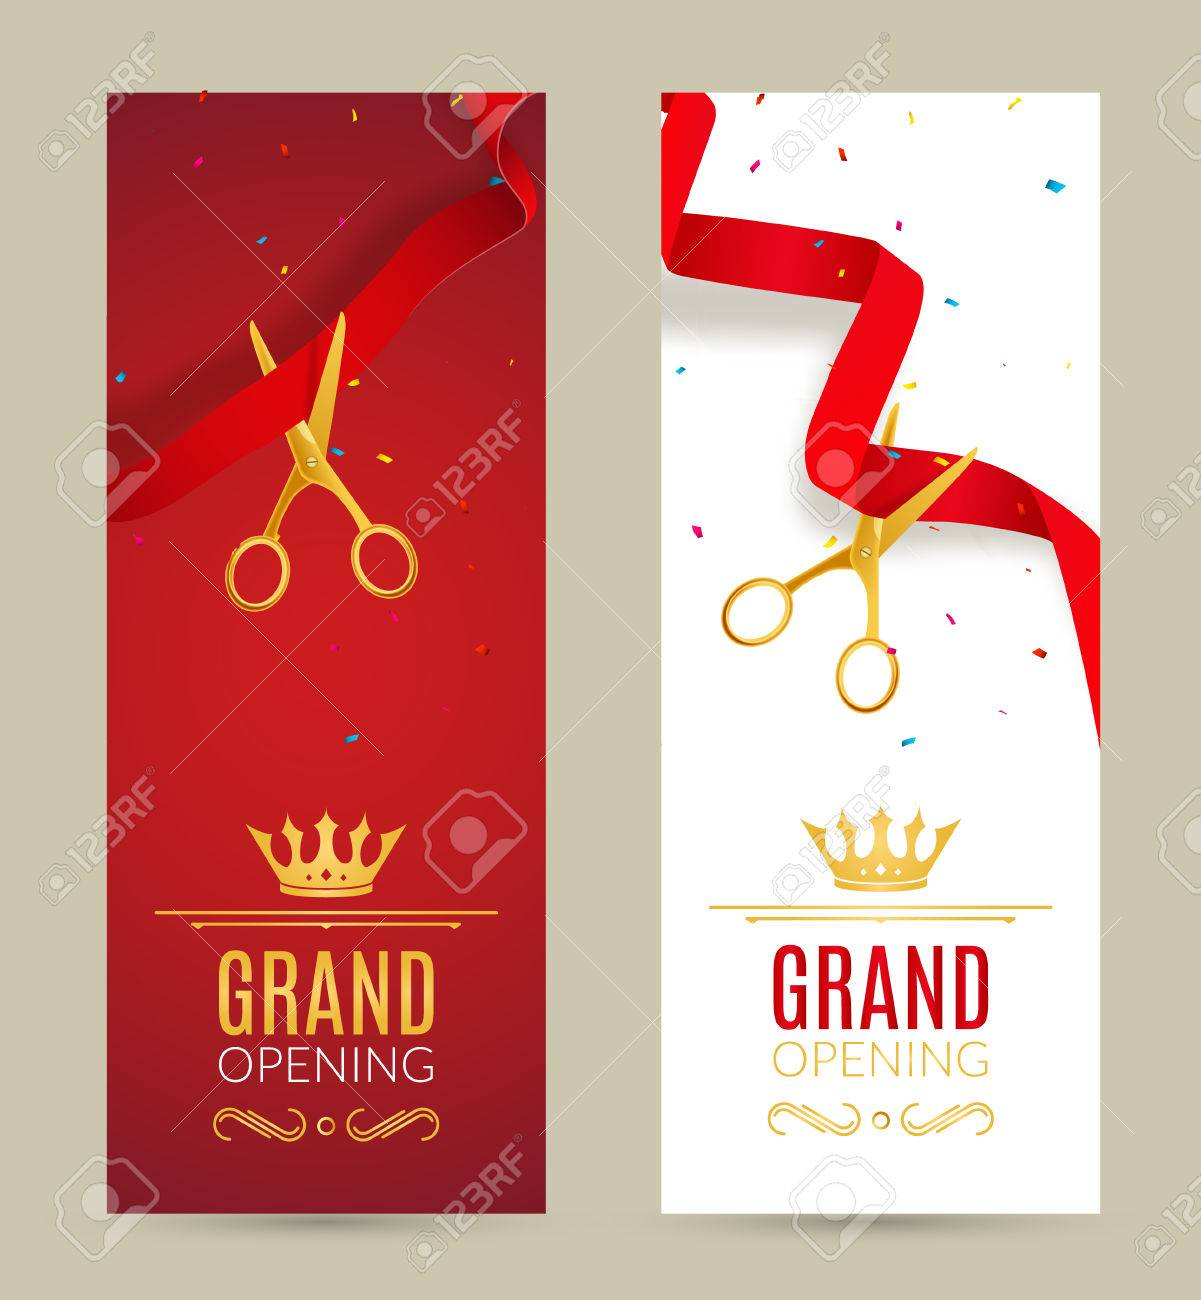 Grand opening invitation banner red ribbon cut ceremony event grand opening invitation banner red ribbon cut ceremony event grand opening celebration card stopboris Gallery